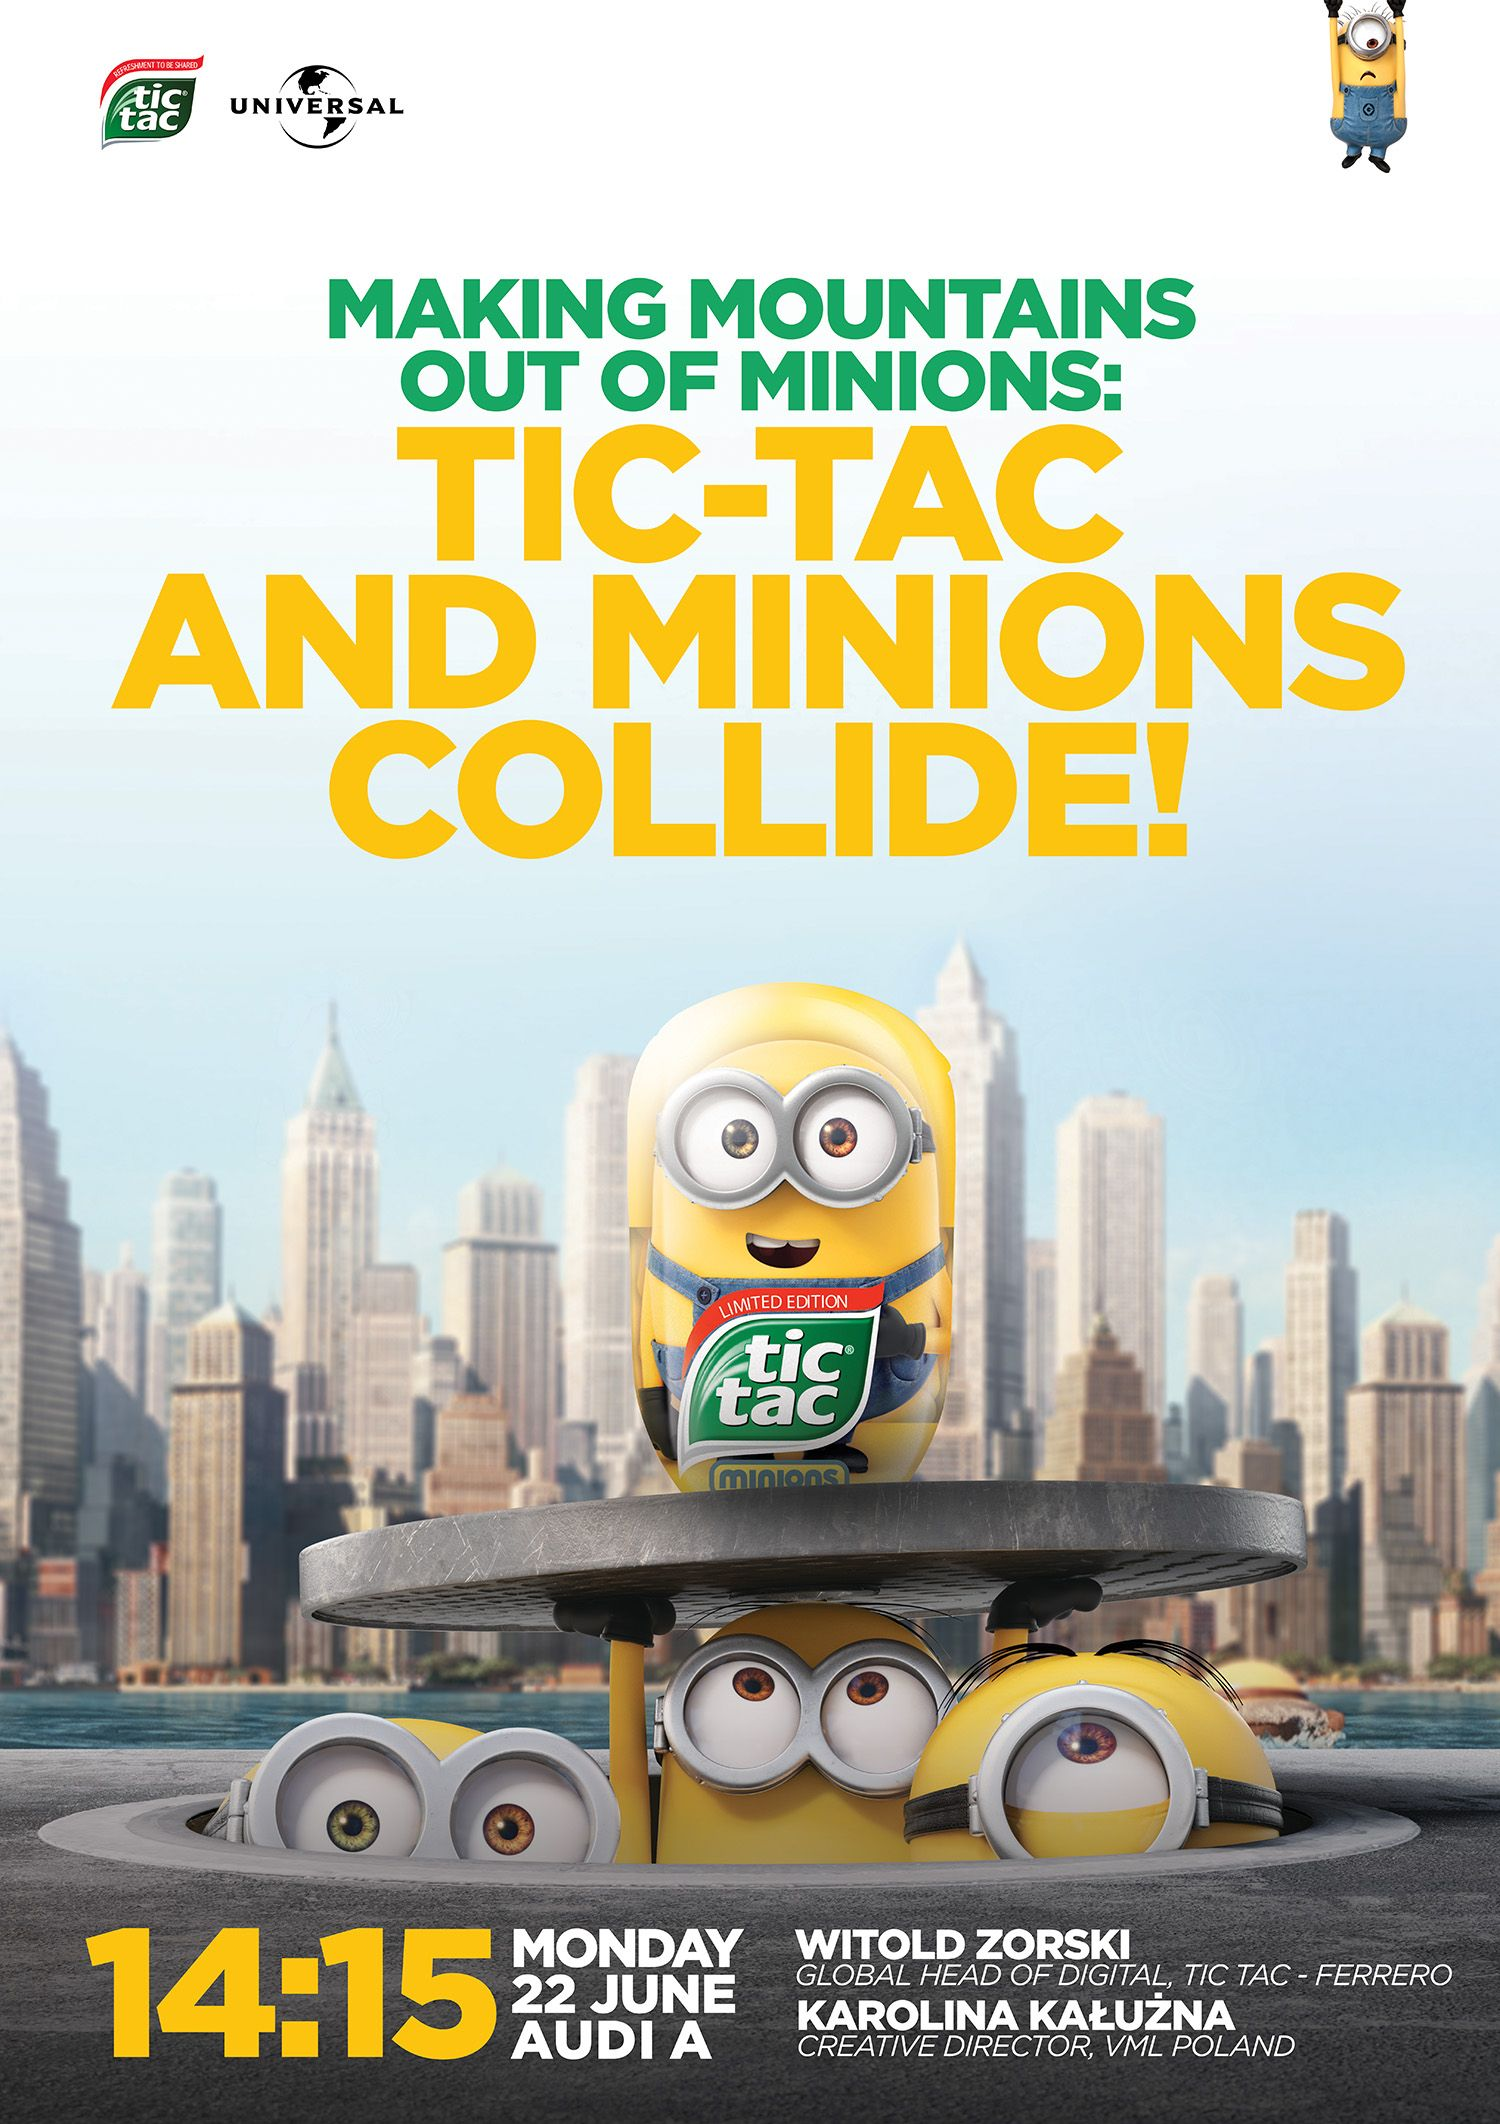 MAKING MOUNTAINS OUT OF MINIONS: TIC-TAC AND MINIONS COLLIDE